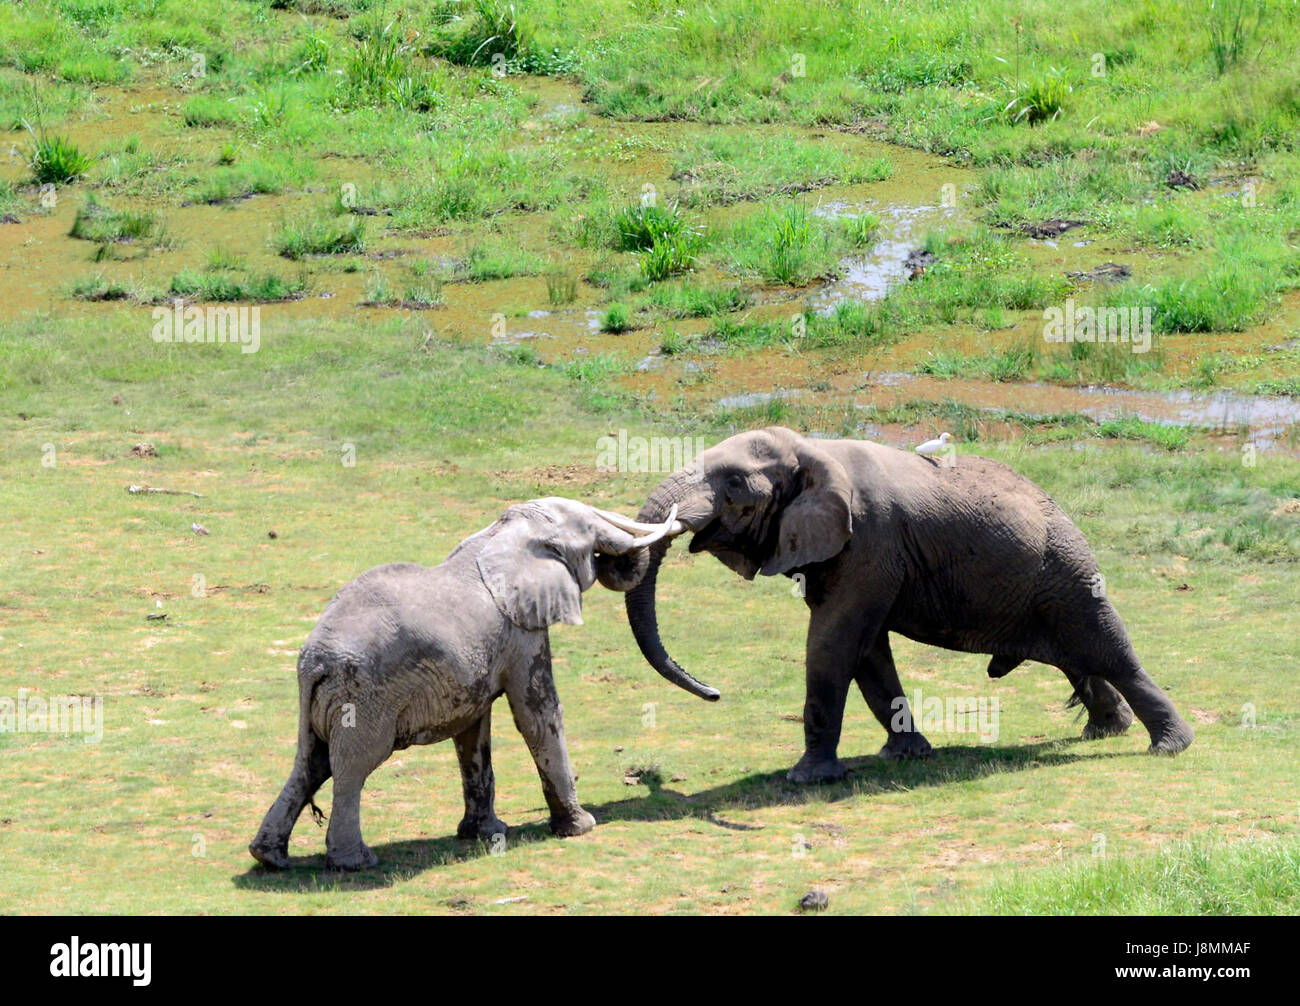 African Elephants playing in Amboseli national park in Kenya. - Stock Image